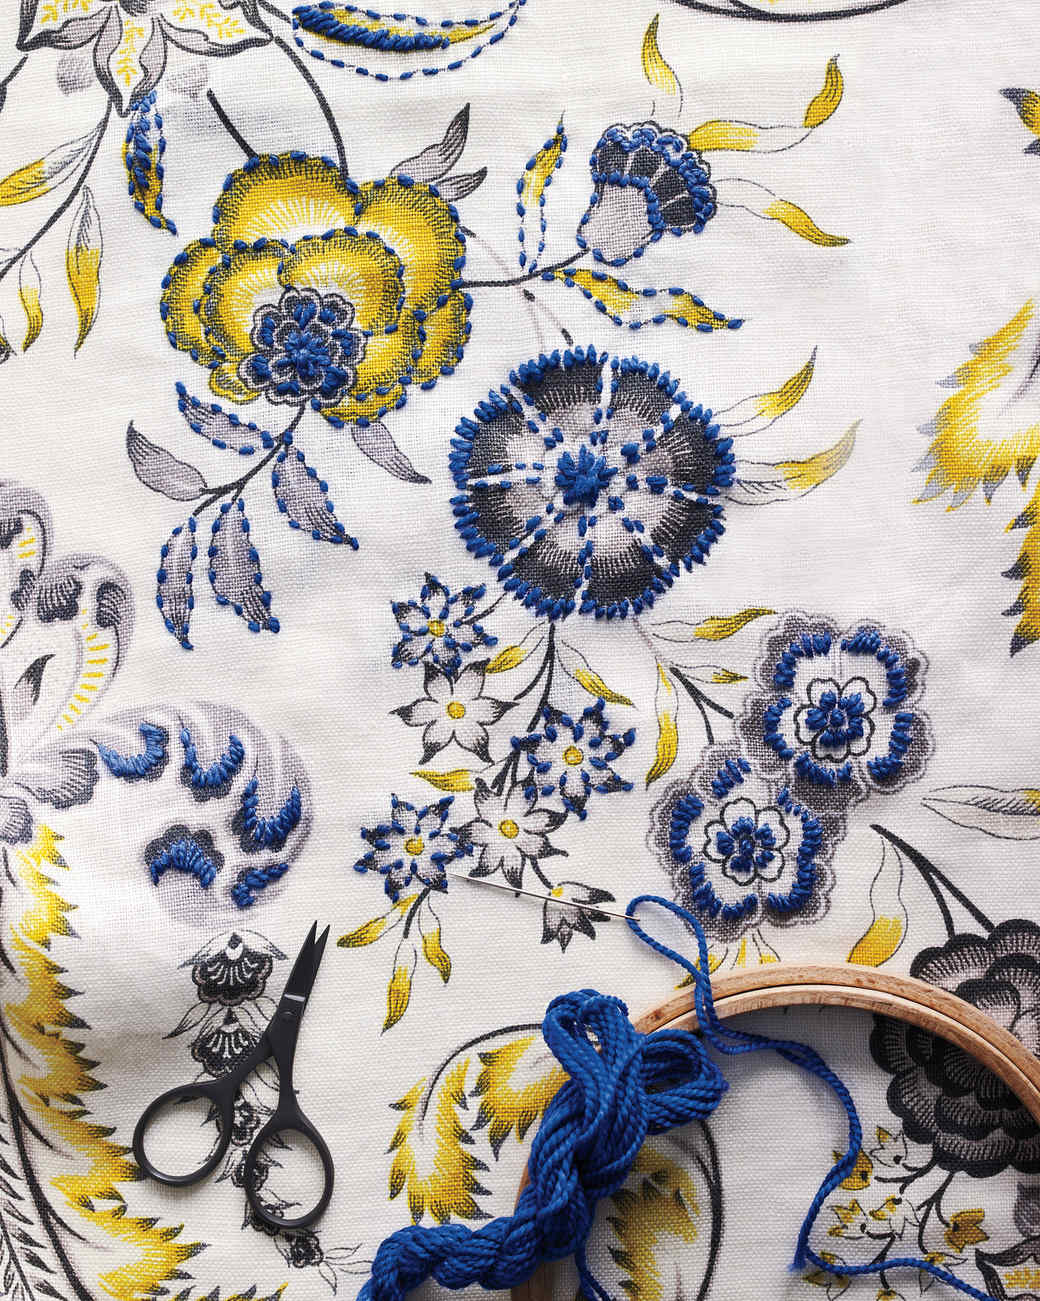 embroidery-detail-049-d111671.jpg